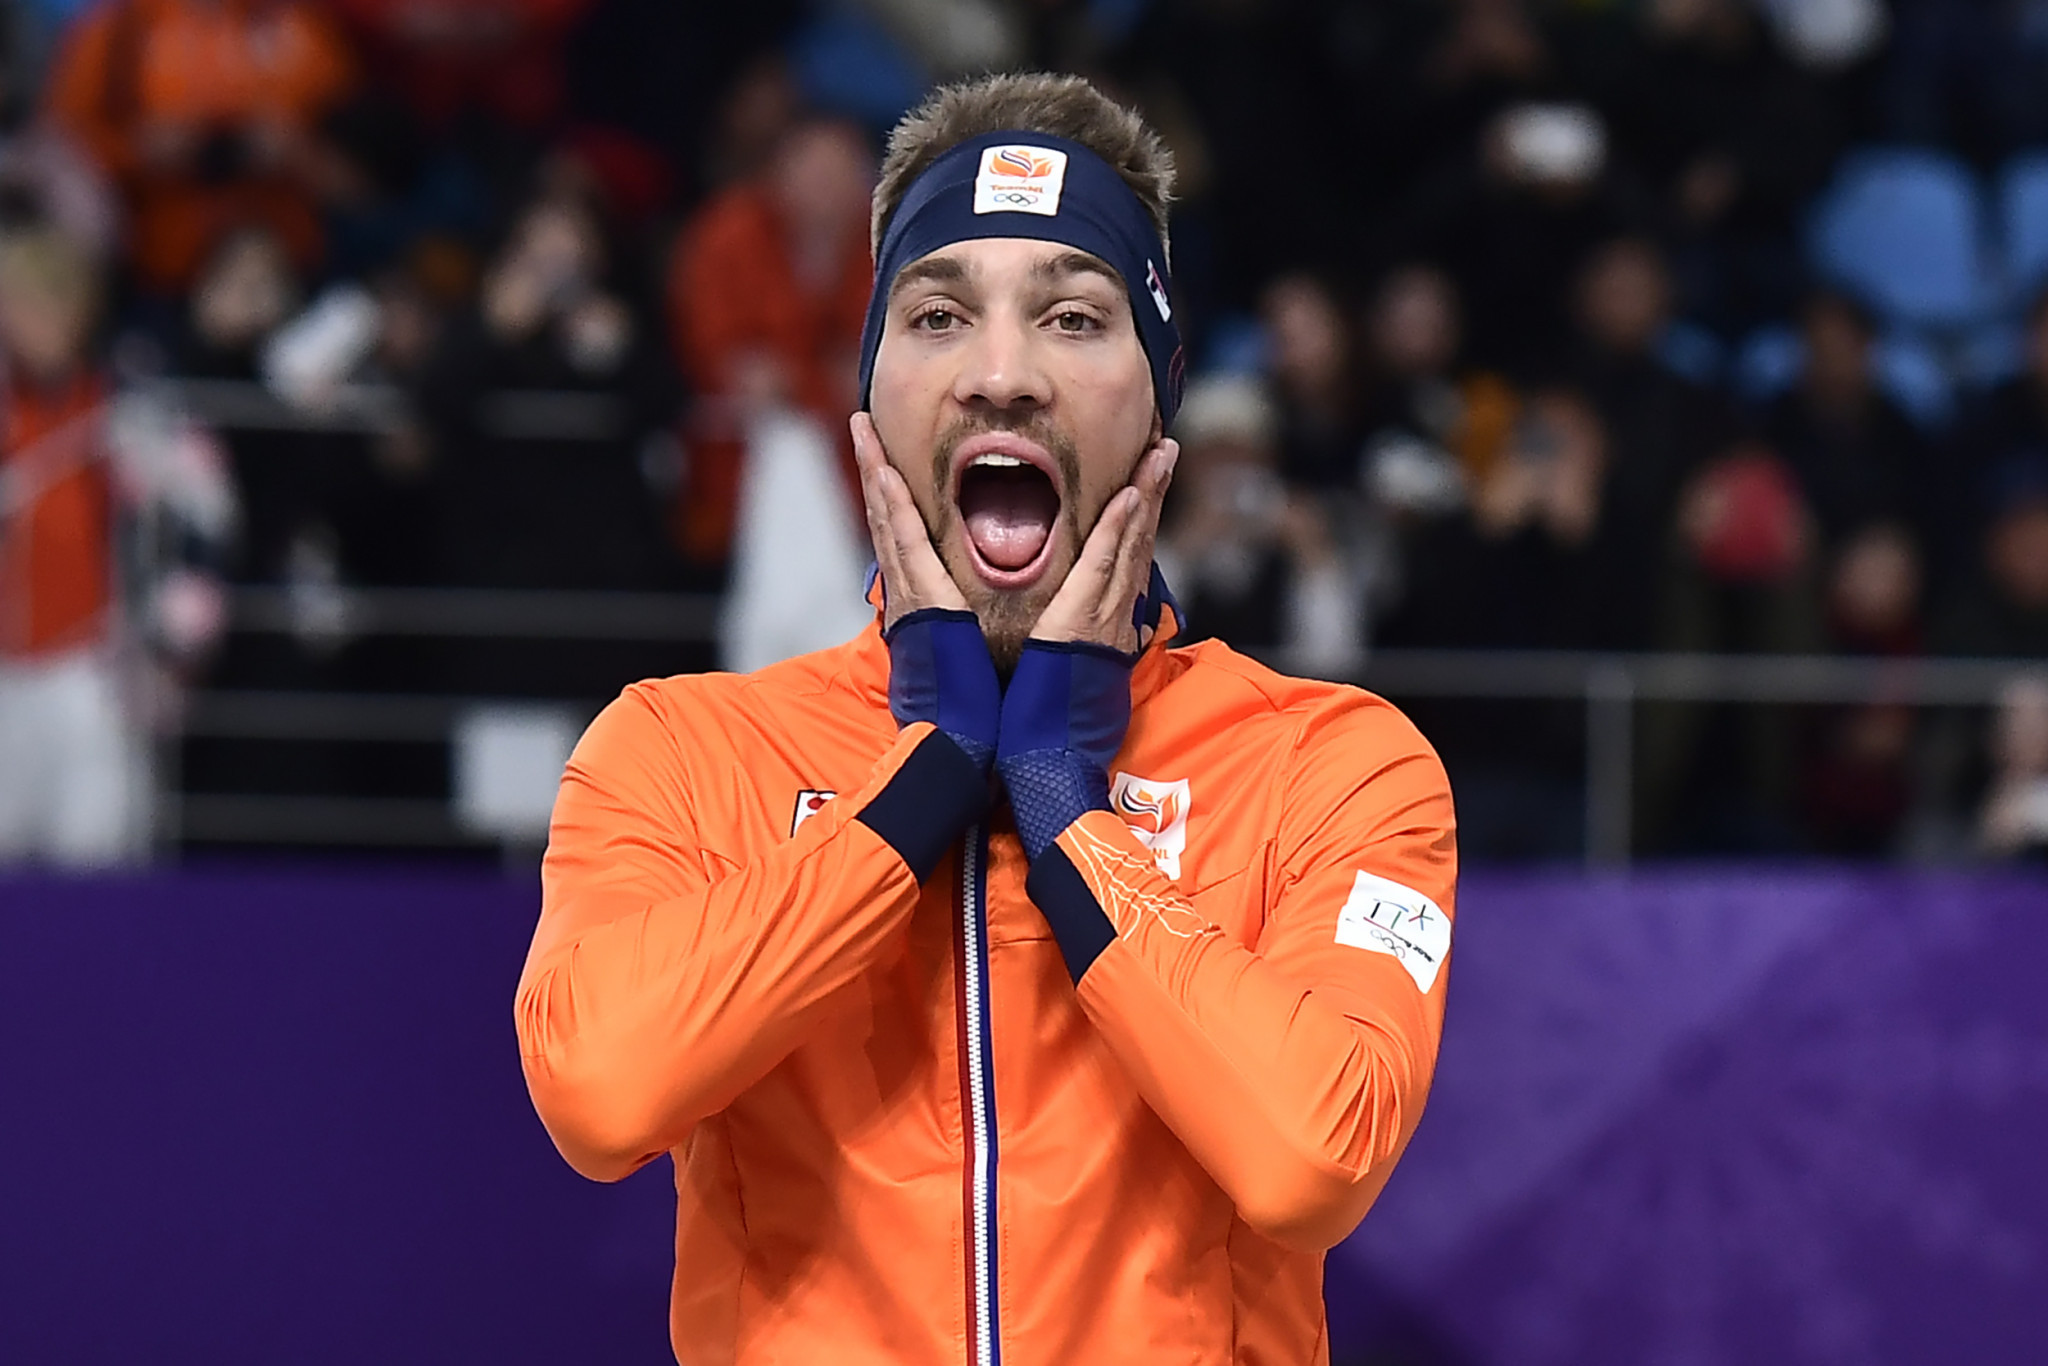 Dutch hosts impress on final day of ISU Speed Skating World Cup in Heerenveen